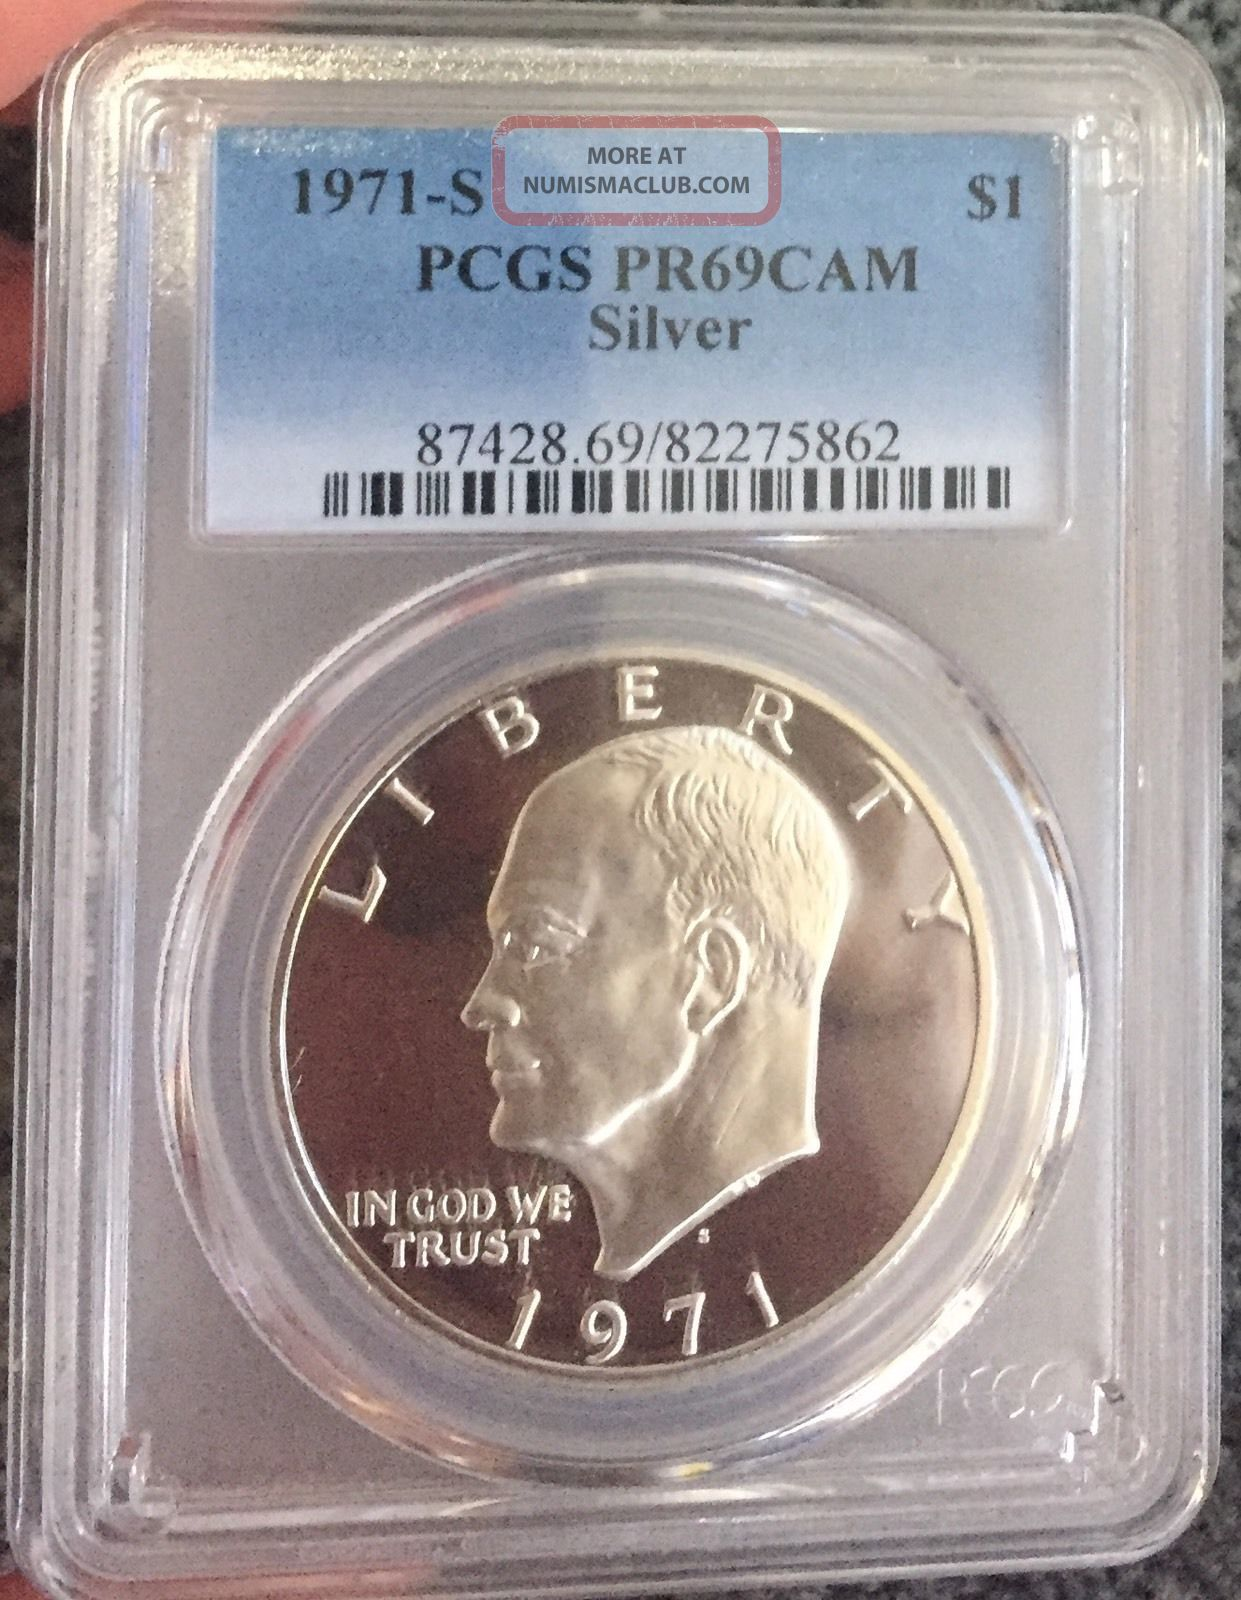 1971 S Pcgs Pr69cam Cameo Proof Silver Eisenhower Dollar Dollars photo